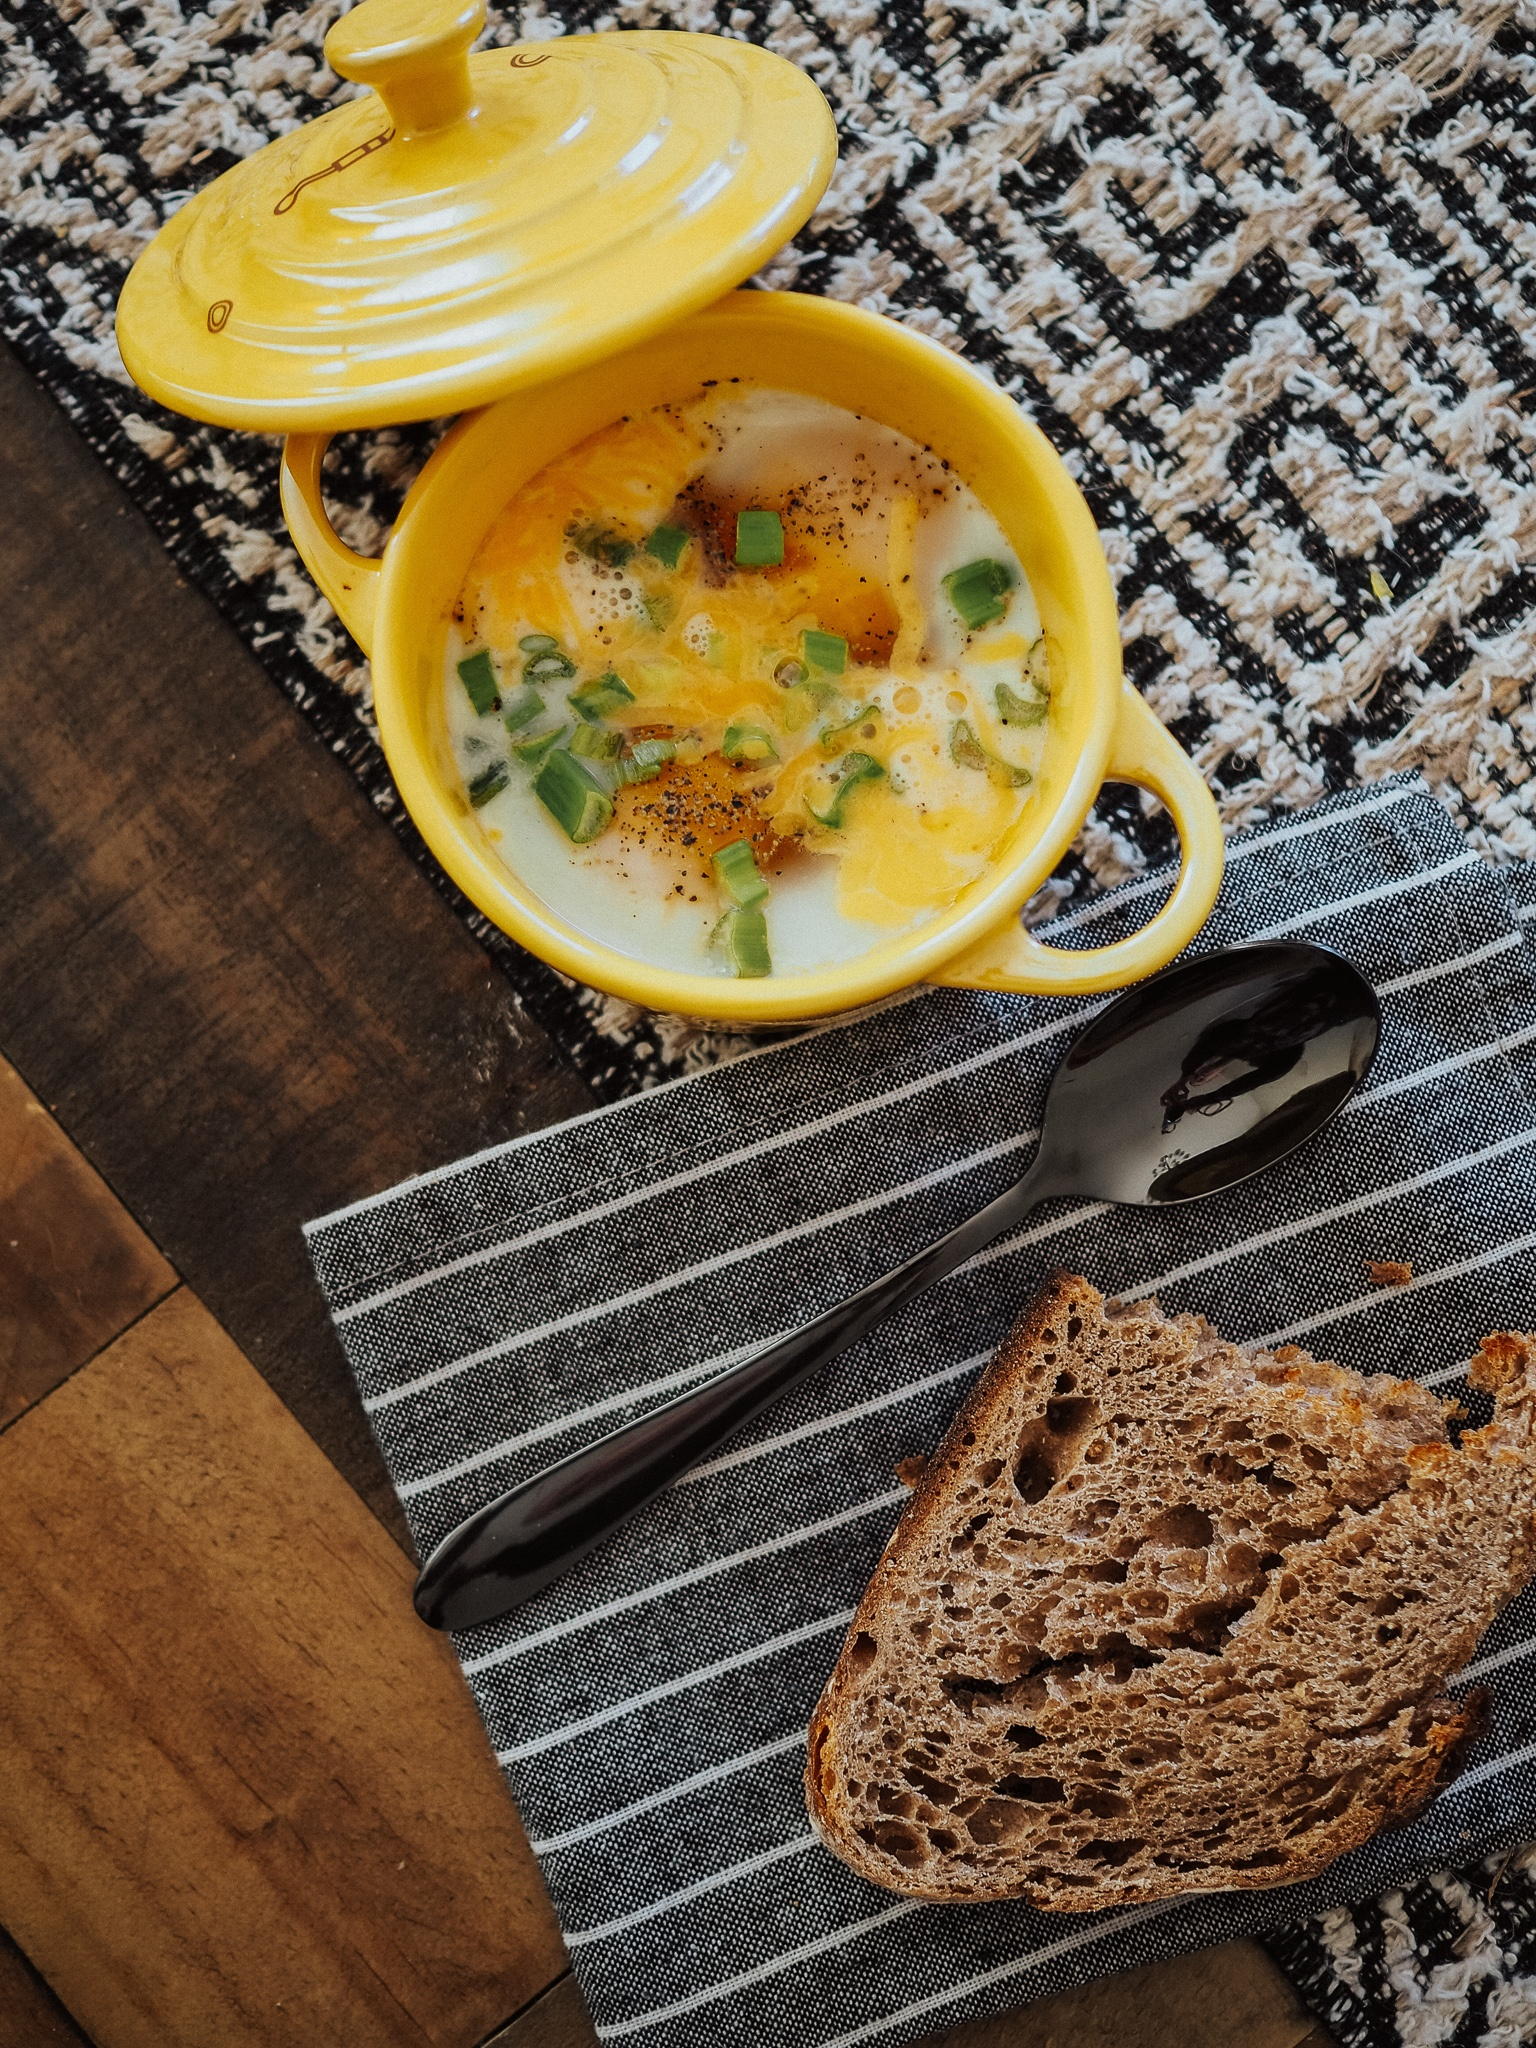 Make delicious Oeuf en Cocotte at home with this easy recipe! Kelsey from Blondes & Bagels teaches a simple Oeuf en Cocotte recipe.